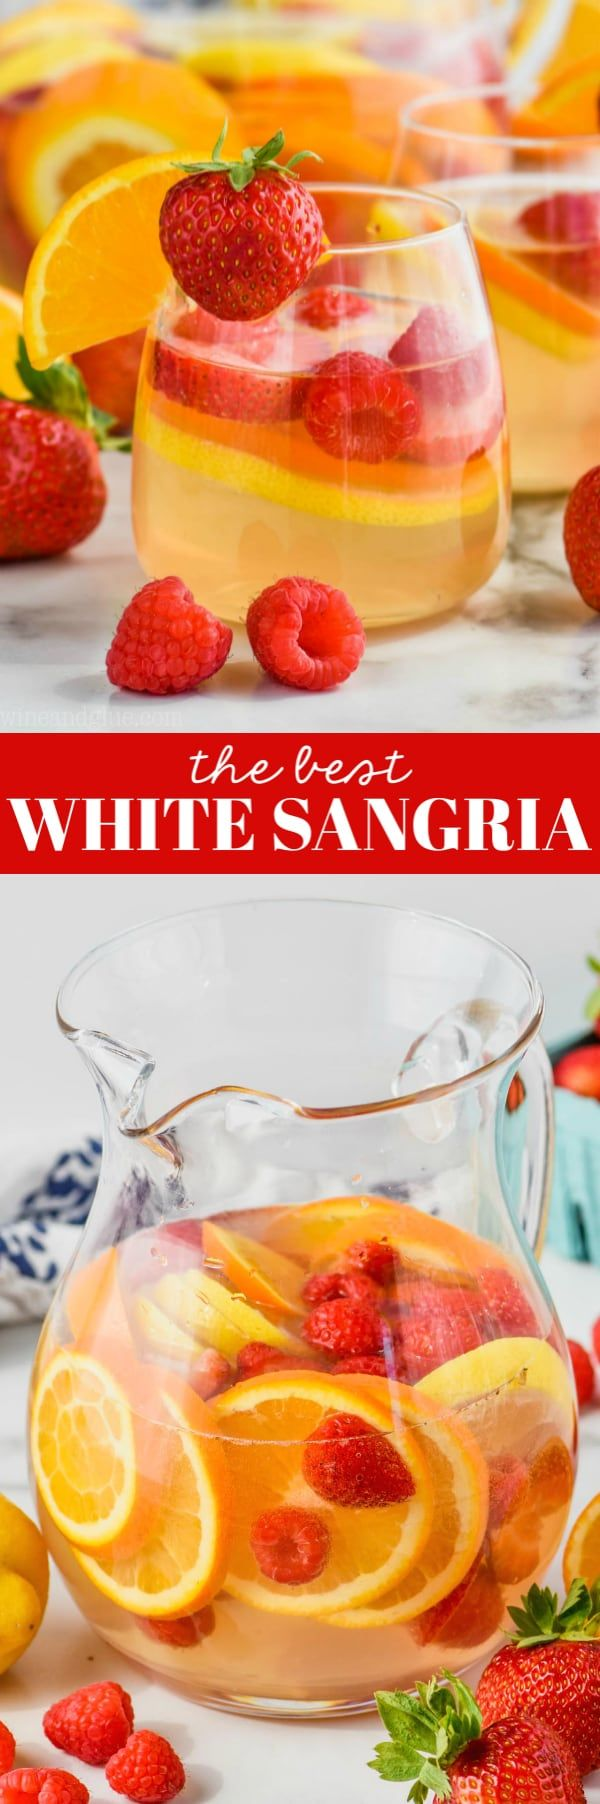 This White Sangria Recipe Comes Together Fast With Just A Few Ingredients And Is So Perfect For In 2020 White Sangria Recipe Sangria Recipes White Wine Sangria Recipe